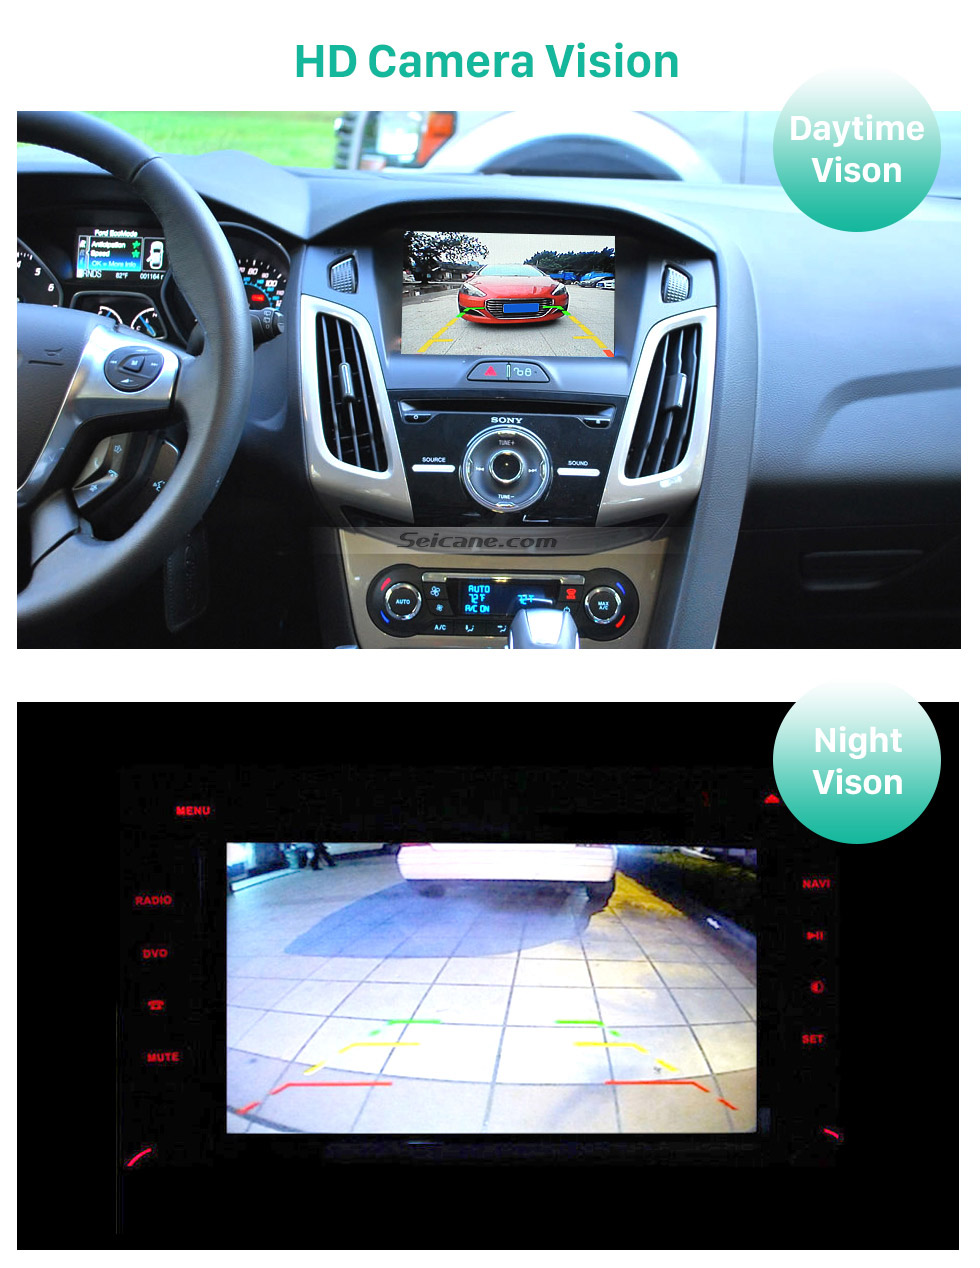 HD Camera Vision HD Wired Car Parking Backup Reversing Camera for 2012-2013 NEW Ford Focus two boxes three boxes Waterproof four-color ruler and LR logo Night Vision free shipping